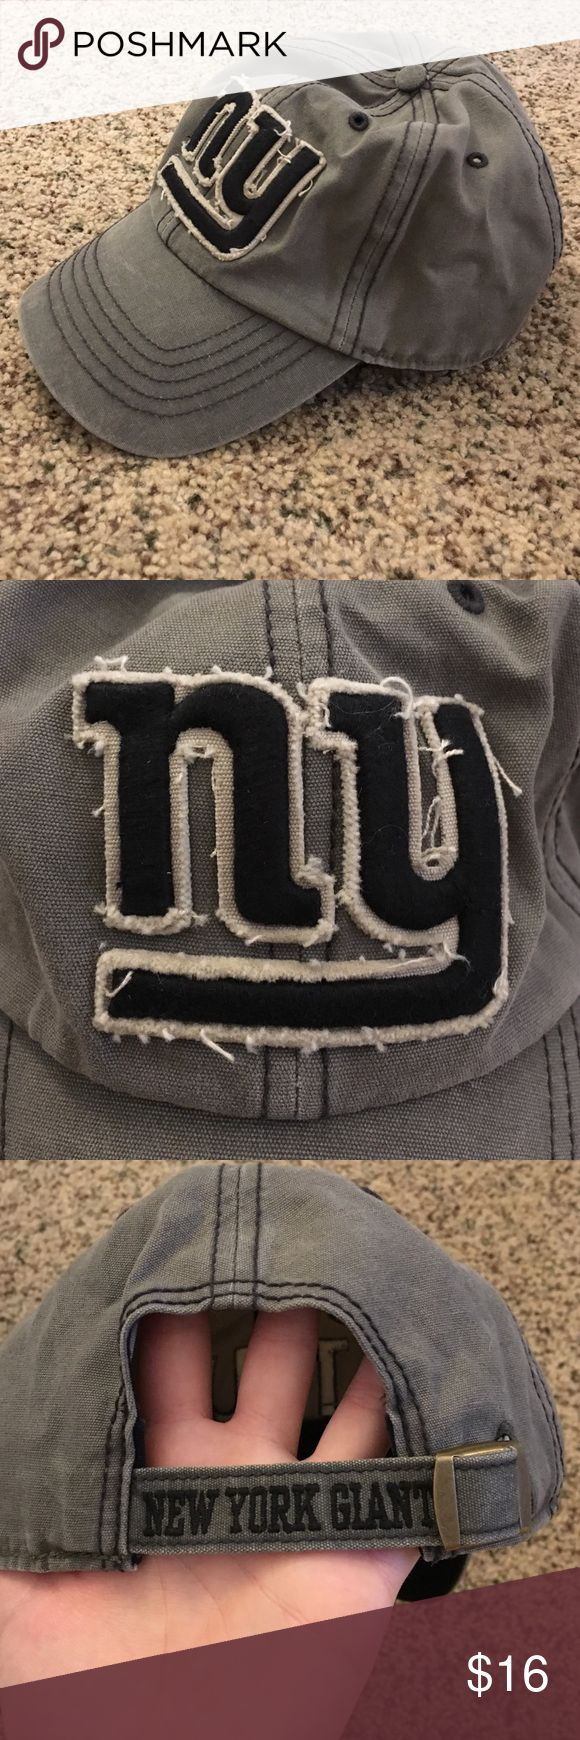 """NWOT NY Giants hat Brand new NYG hat. Medium gray color with navy blue distressed logo. Adjustable back with cool """"New York Giants"""" detail. NFL Team Apparel. NFL Accessories Hats"""